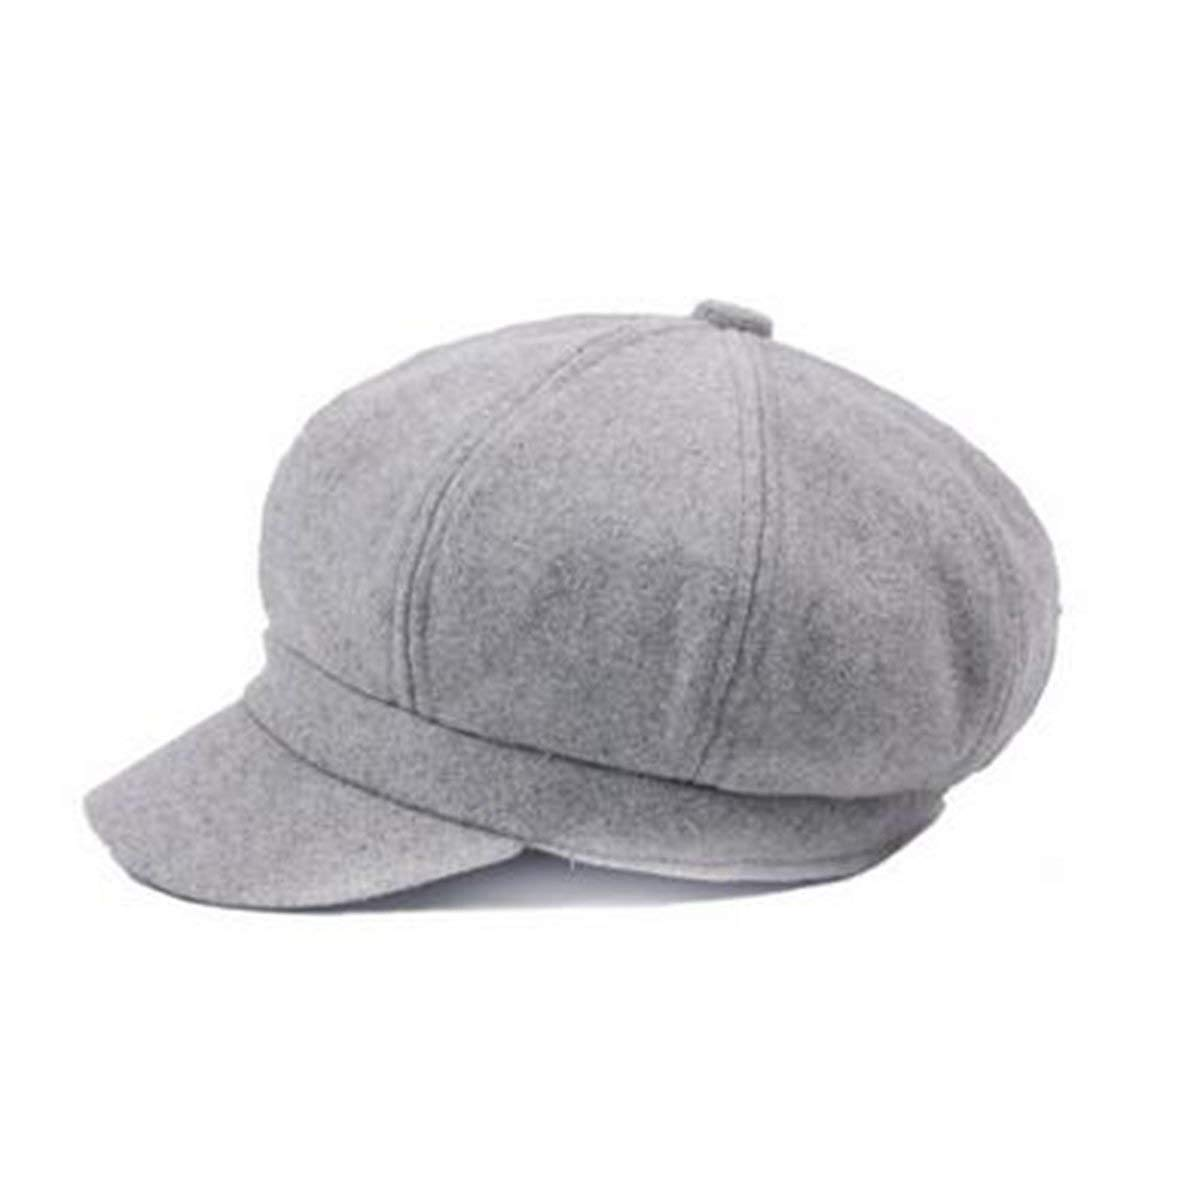 Fancuistore Wool Cap for Women's Casual Adjustable Travel Hat Berets (Color : Grey, Size : One Size)